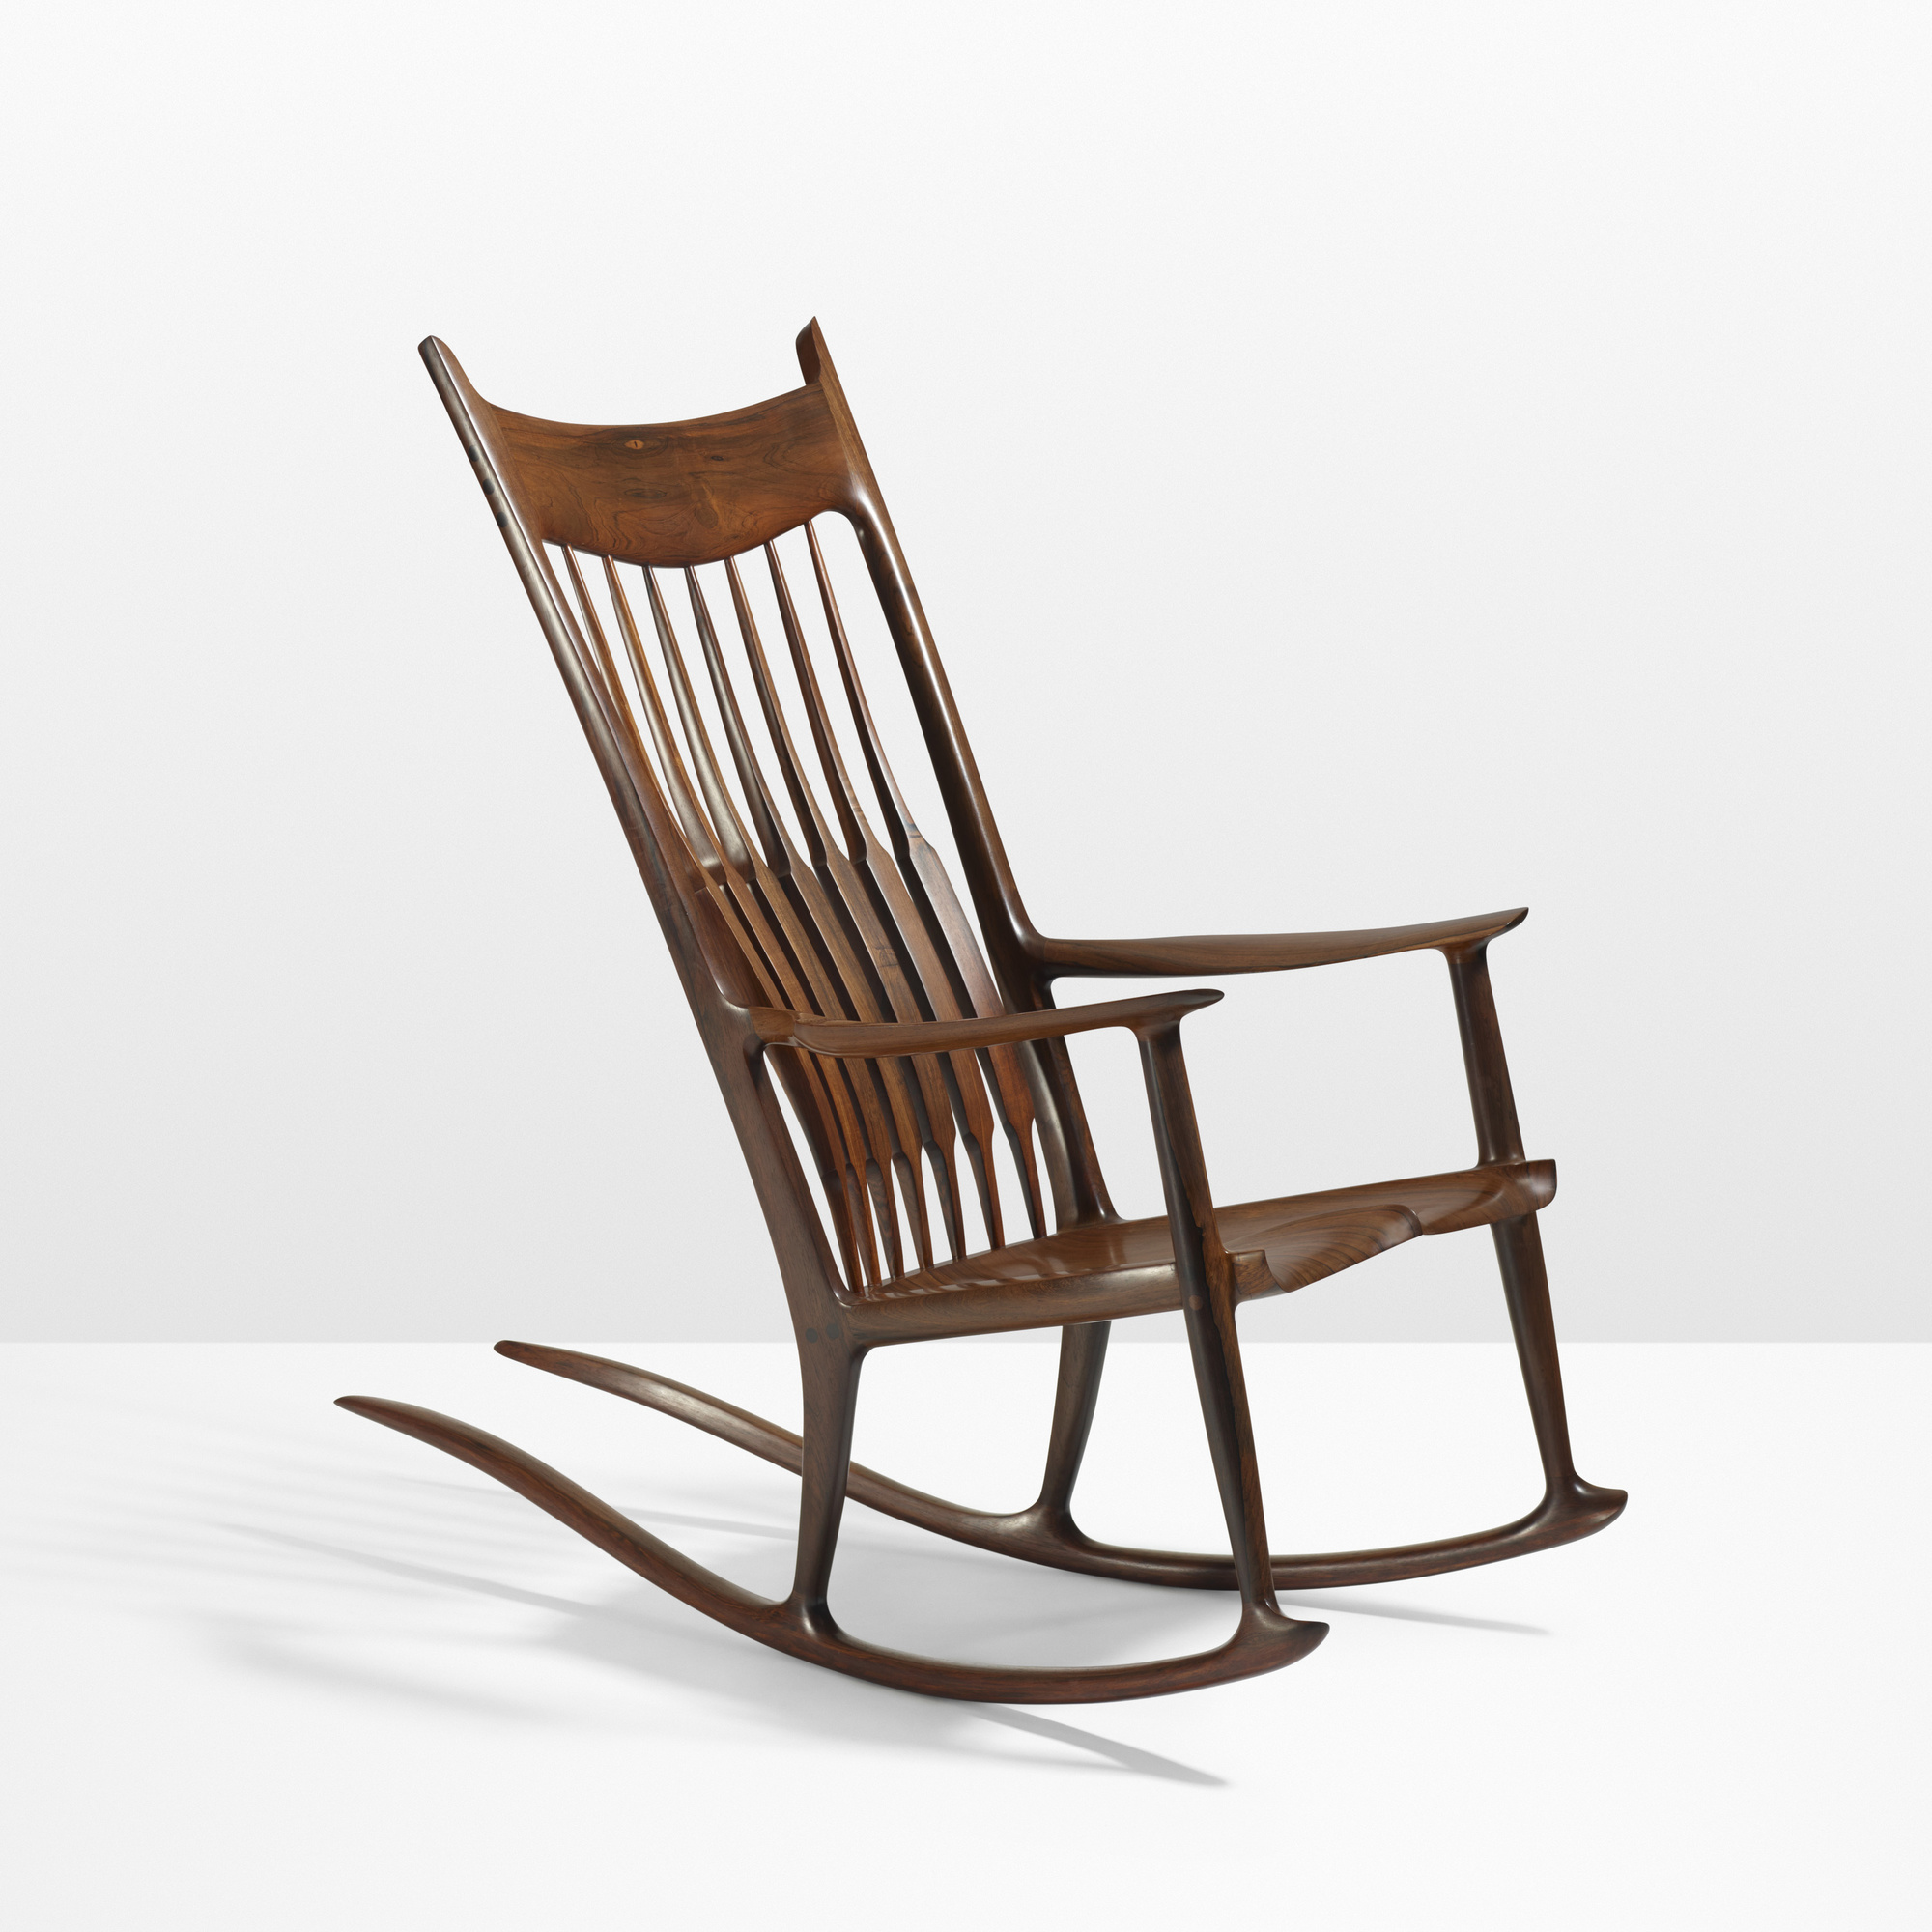 Sam Maloof. Important Rocking Chair